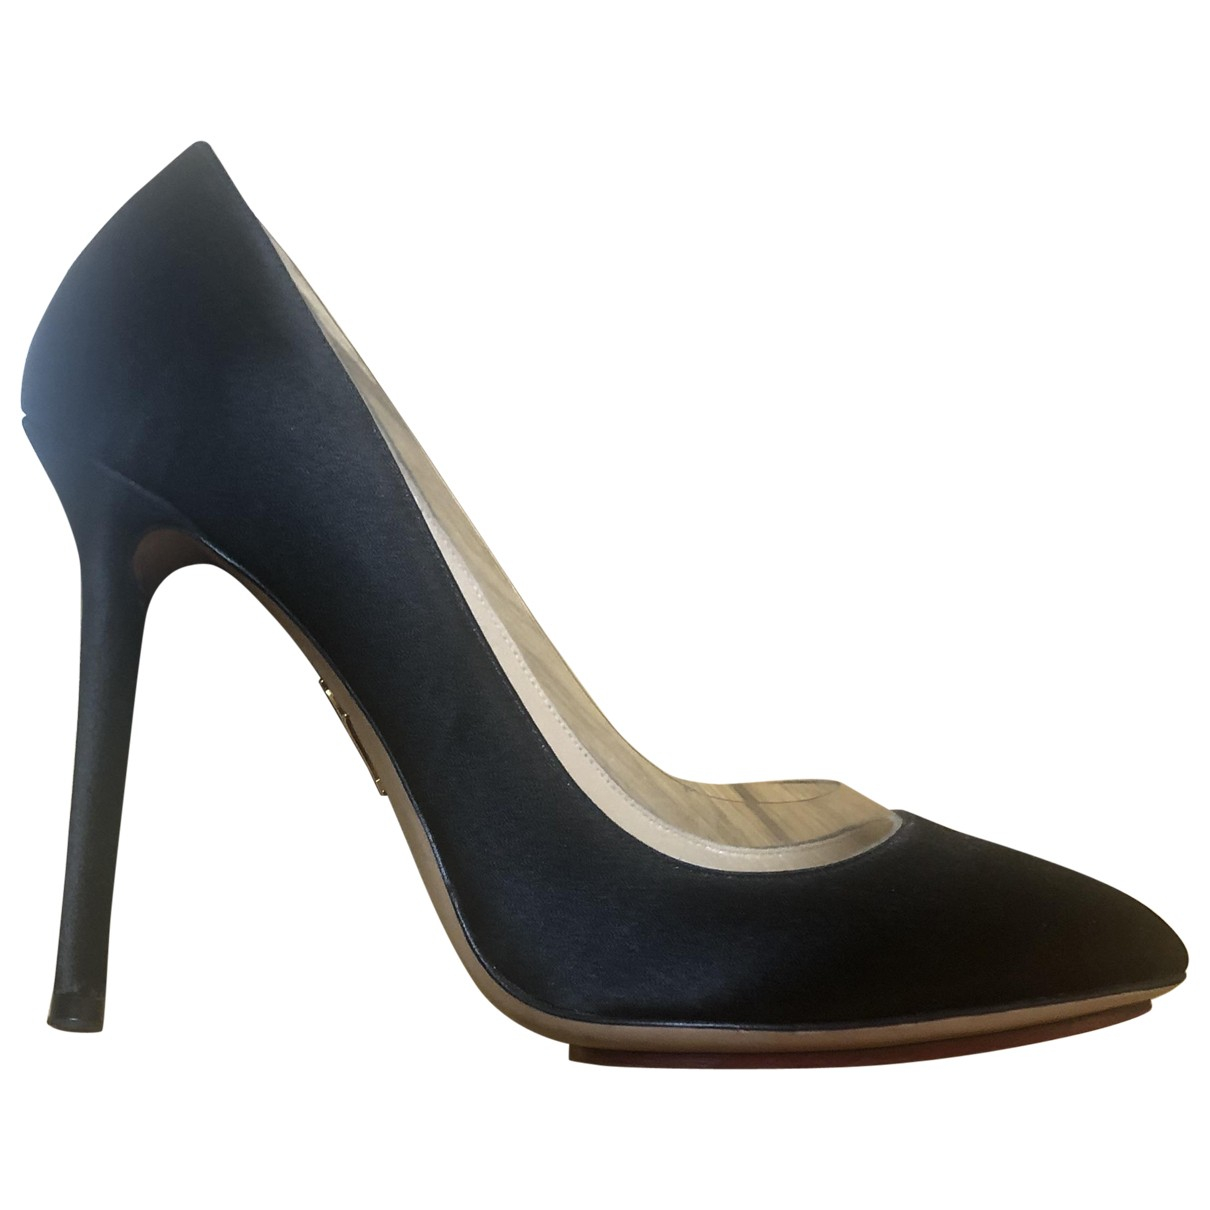 Charlotte Olympia N Black Cloth Heels for Women 38 EU